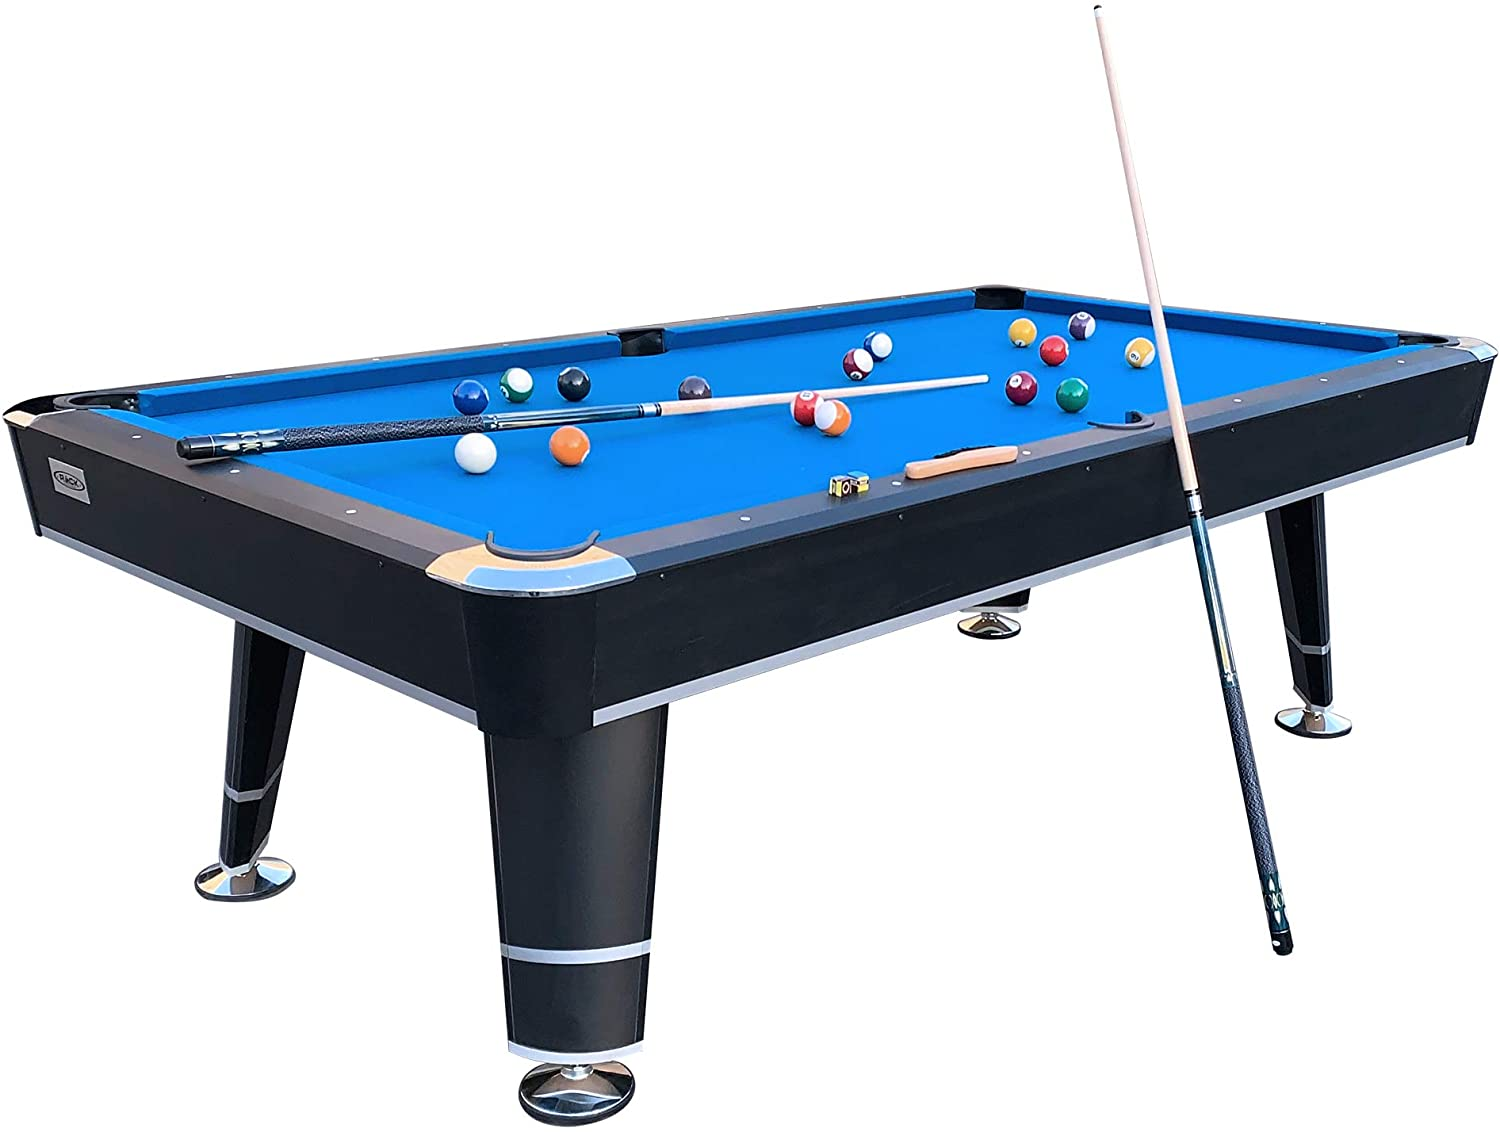 RACK - 8-Feet Orion Billiard